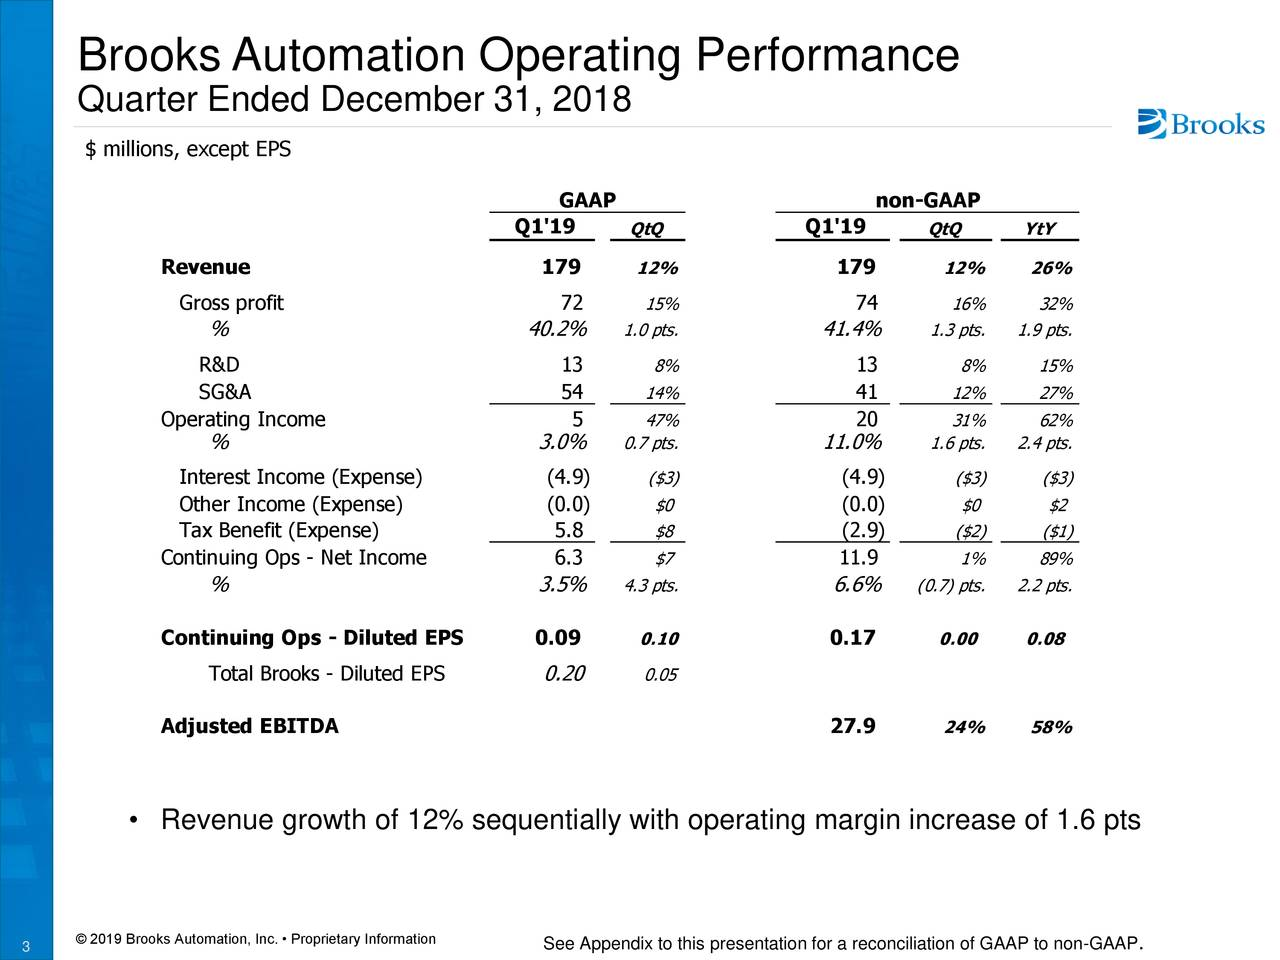 Quarter Ended December 31, 2018 $ millions, except EPS GAAP non-GAAP Q1'19 QtQ Q1'19 QtQ YtY Revenue 179 12% 179 12% 26% Gross profit 72 15% 74 16% 32% % 40.2% 1.0 pts. 41.4% 1.3 pts.1.9 pts. R&D 13 8% 13 8% 15% SG&A 54 14% 41 12% 27% Operating Income 5 47% 20 31% 62% % 3.0% 0.7 pts. 11.0% 1.6 pts.2.4 pts. Interest Income (Expense) (4.9) ($3) (4.9) ($3) ($3) Other Income (Expense) (0.0) $0 (0.0) $0 $2 Tax Benefit (Expense) 5.8 $8 (2.9) ($2) ($1) Continuing Ops - Net Income 6.3 $7 11.9 1% 89% % 3.5% 4.3 pts. 6.6% (0.7) pts.2.2 pts. Continuing Ops - Diluted EPS 0.09 0.10 0.17 0.00 0.08 Total Brooks - Diluted EPS 0.20 0.05 Adjusted EBITDA 27.9 24% 58% • Revenue growth of 12% sequentially with operating margin increase of 1.6 pts © 2019 Brooks Automation, Inc. • Proprietary ISee Appendix to this presentation for a reconciliation of .AAP to non-GAAP